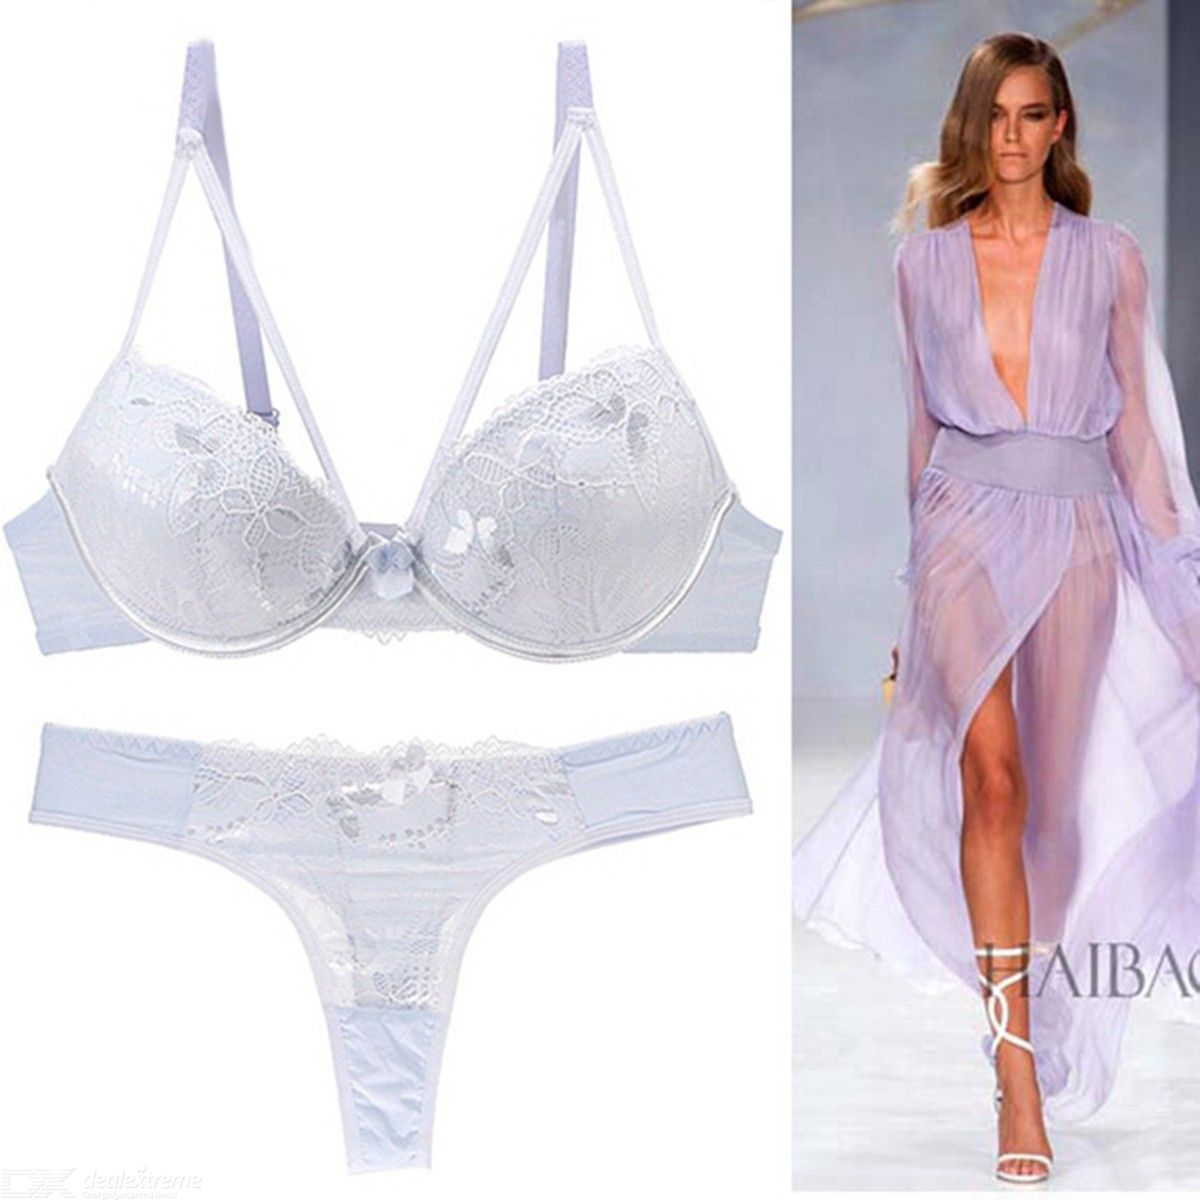 8776fbcbeac Sexy Bra Set 3 4 Cup Lace Lingerie Embroidery Underwear - Free shipping -  DealExtreme